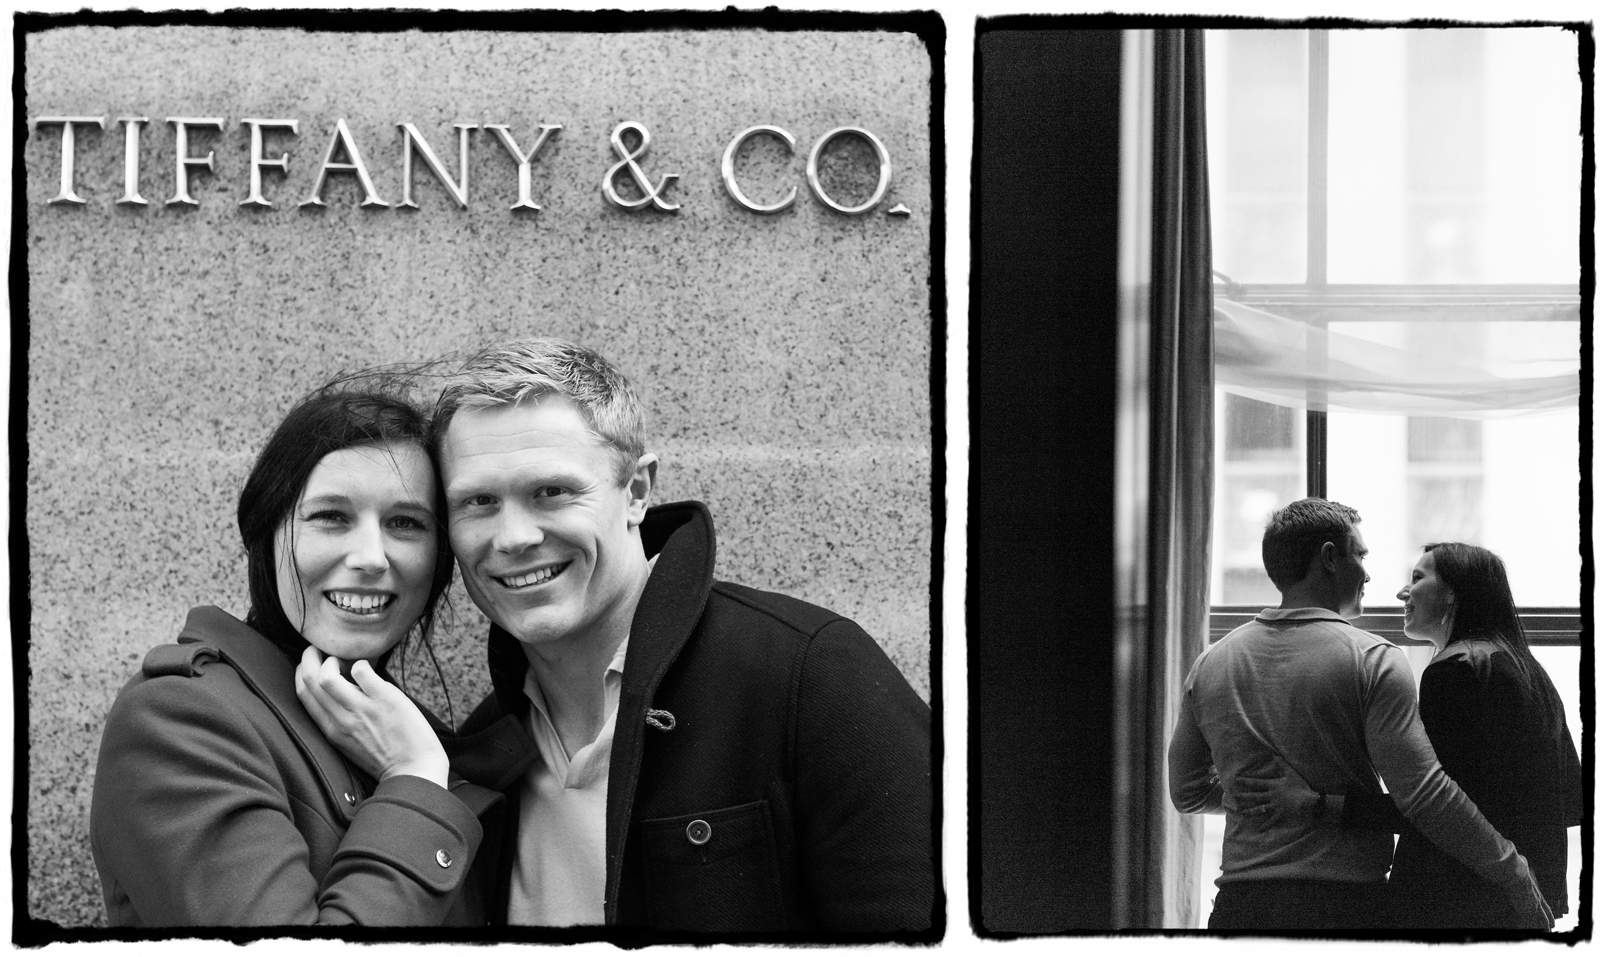 After she said yes, I documented their trip to TIffany's flagship store on Park Ave.